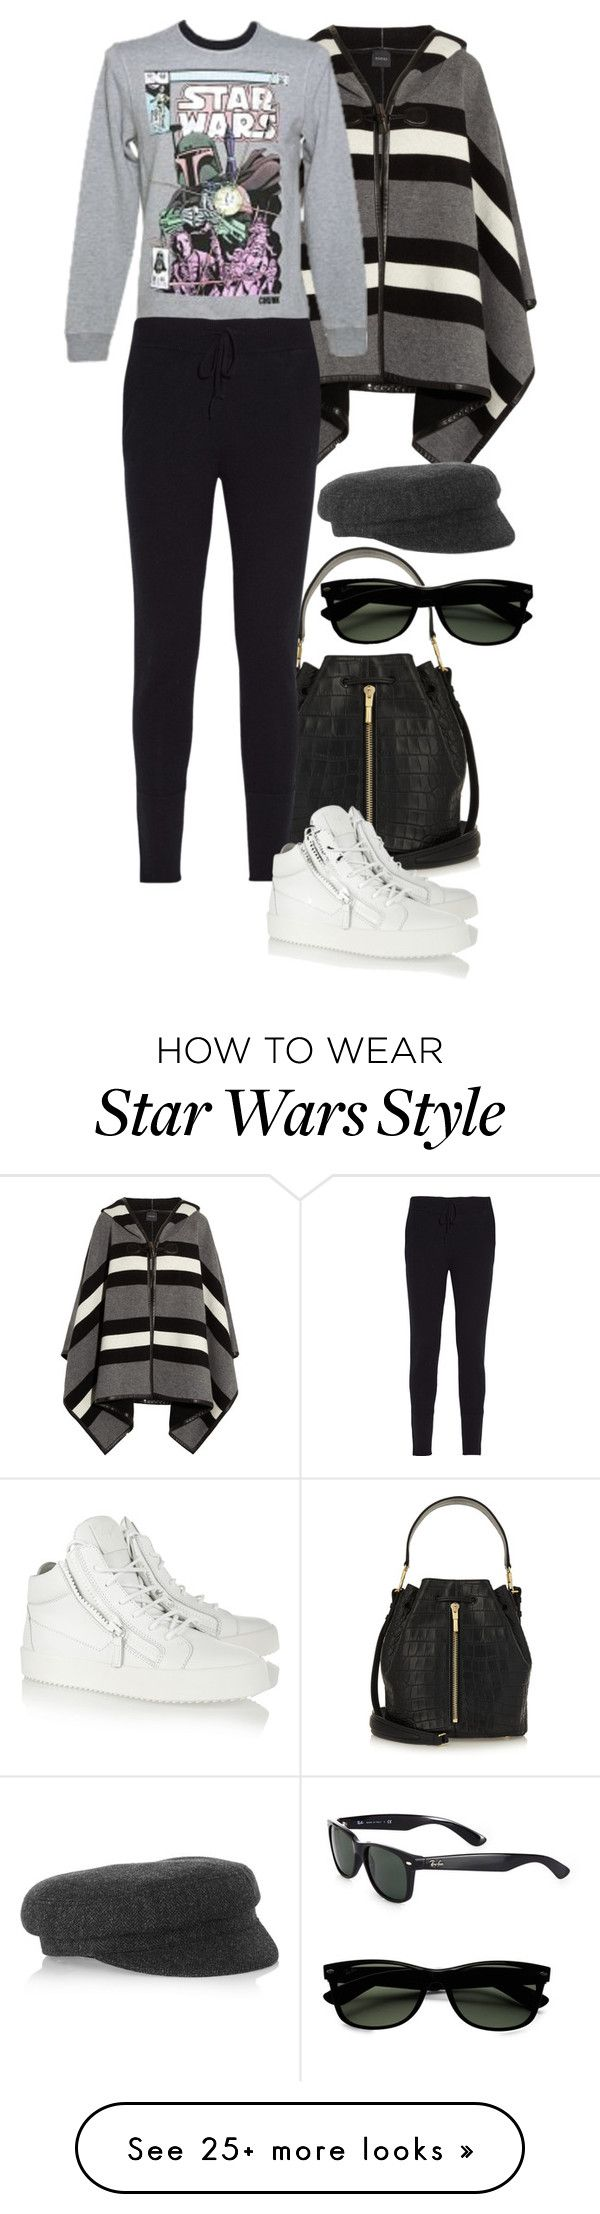 """""""Star Wars 1982."""" by foreverforbiddenromancefashion on Polyvore featuring Gucci, Elizabeth and James, Chinti and Parker, Giuseppe Zanotti, Étoile Isabel Marant and Ray-Ban"""